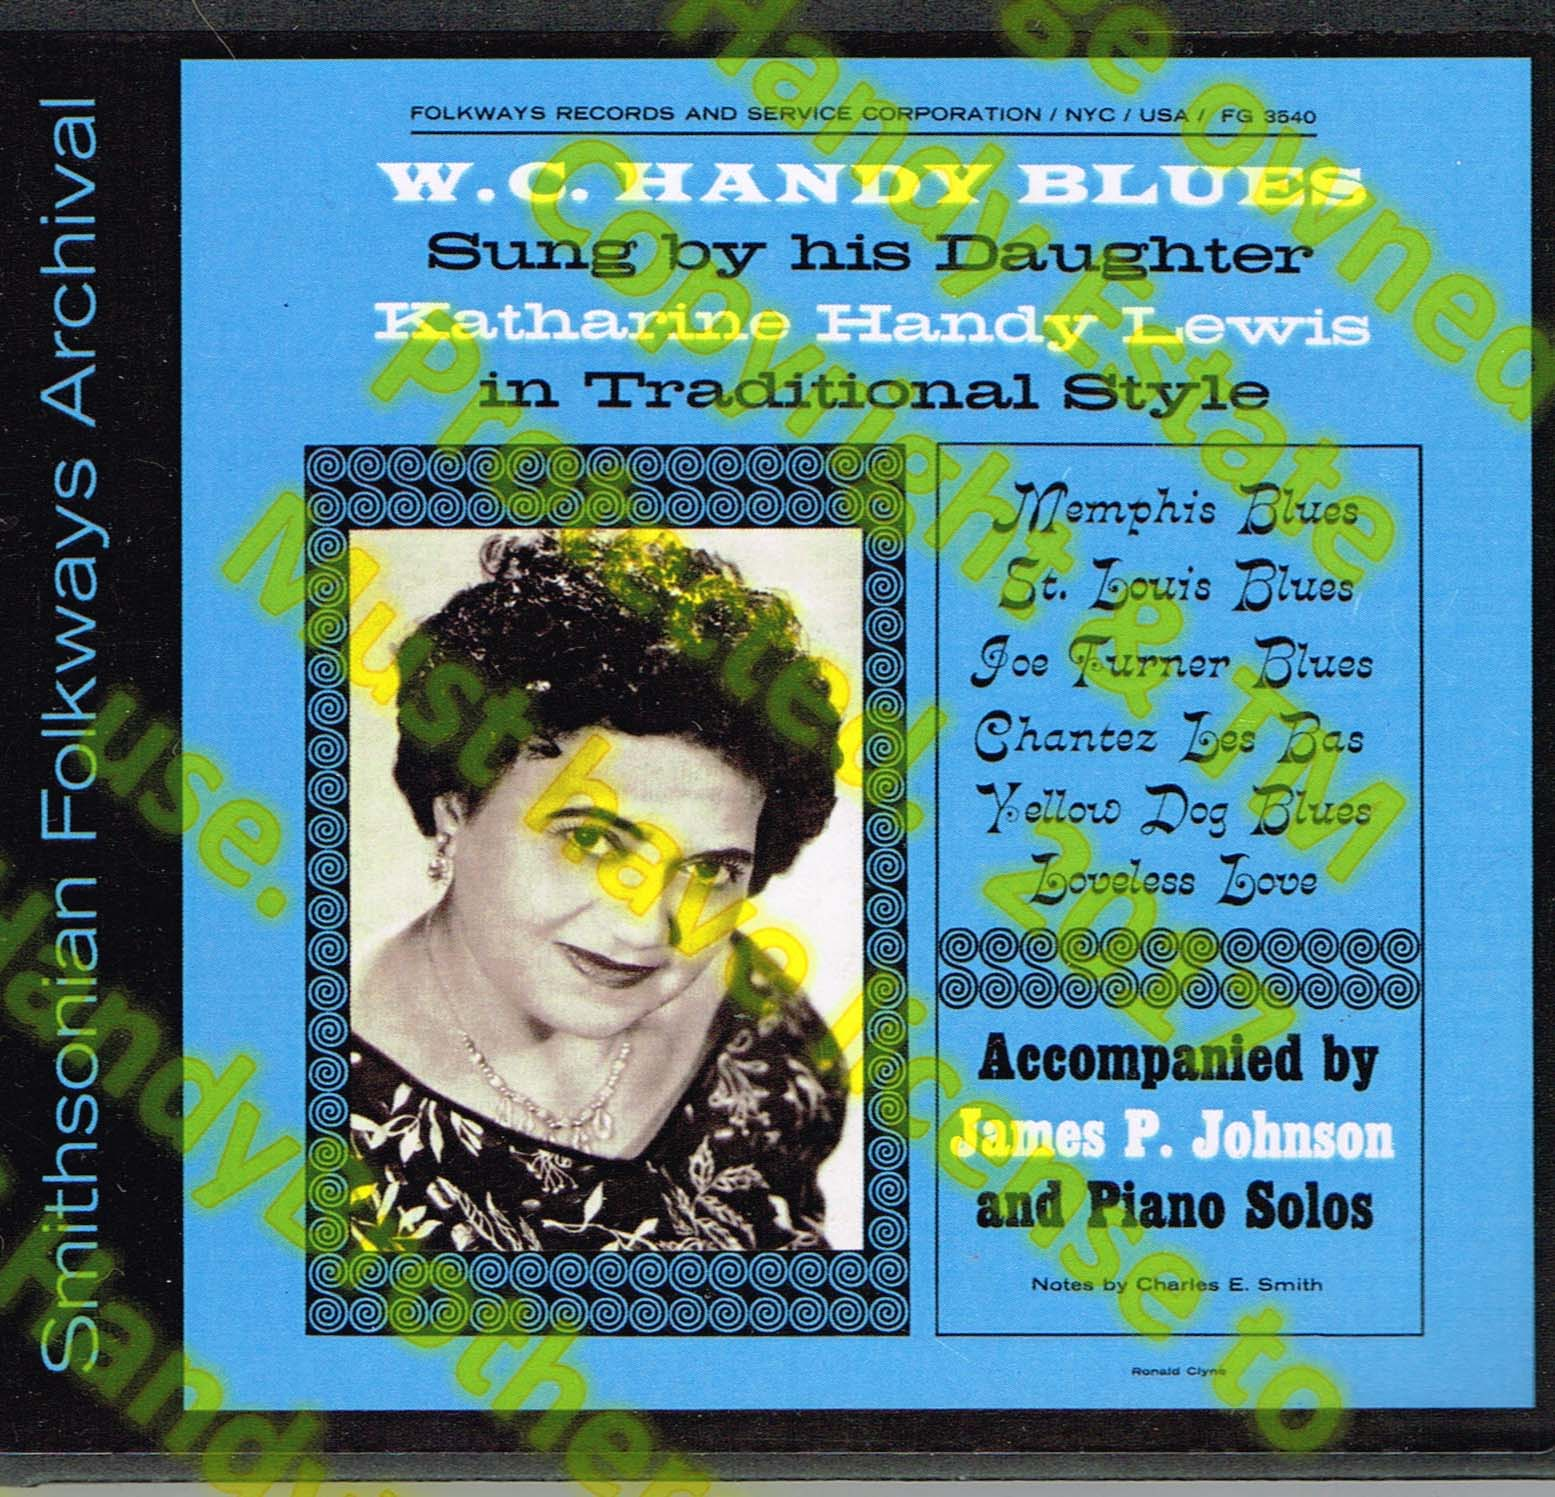 Katherine Handy Lewis singing WC Handy